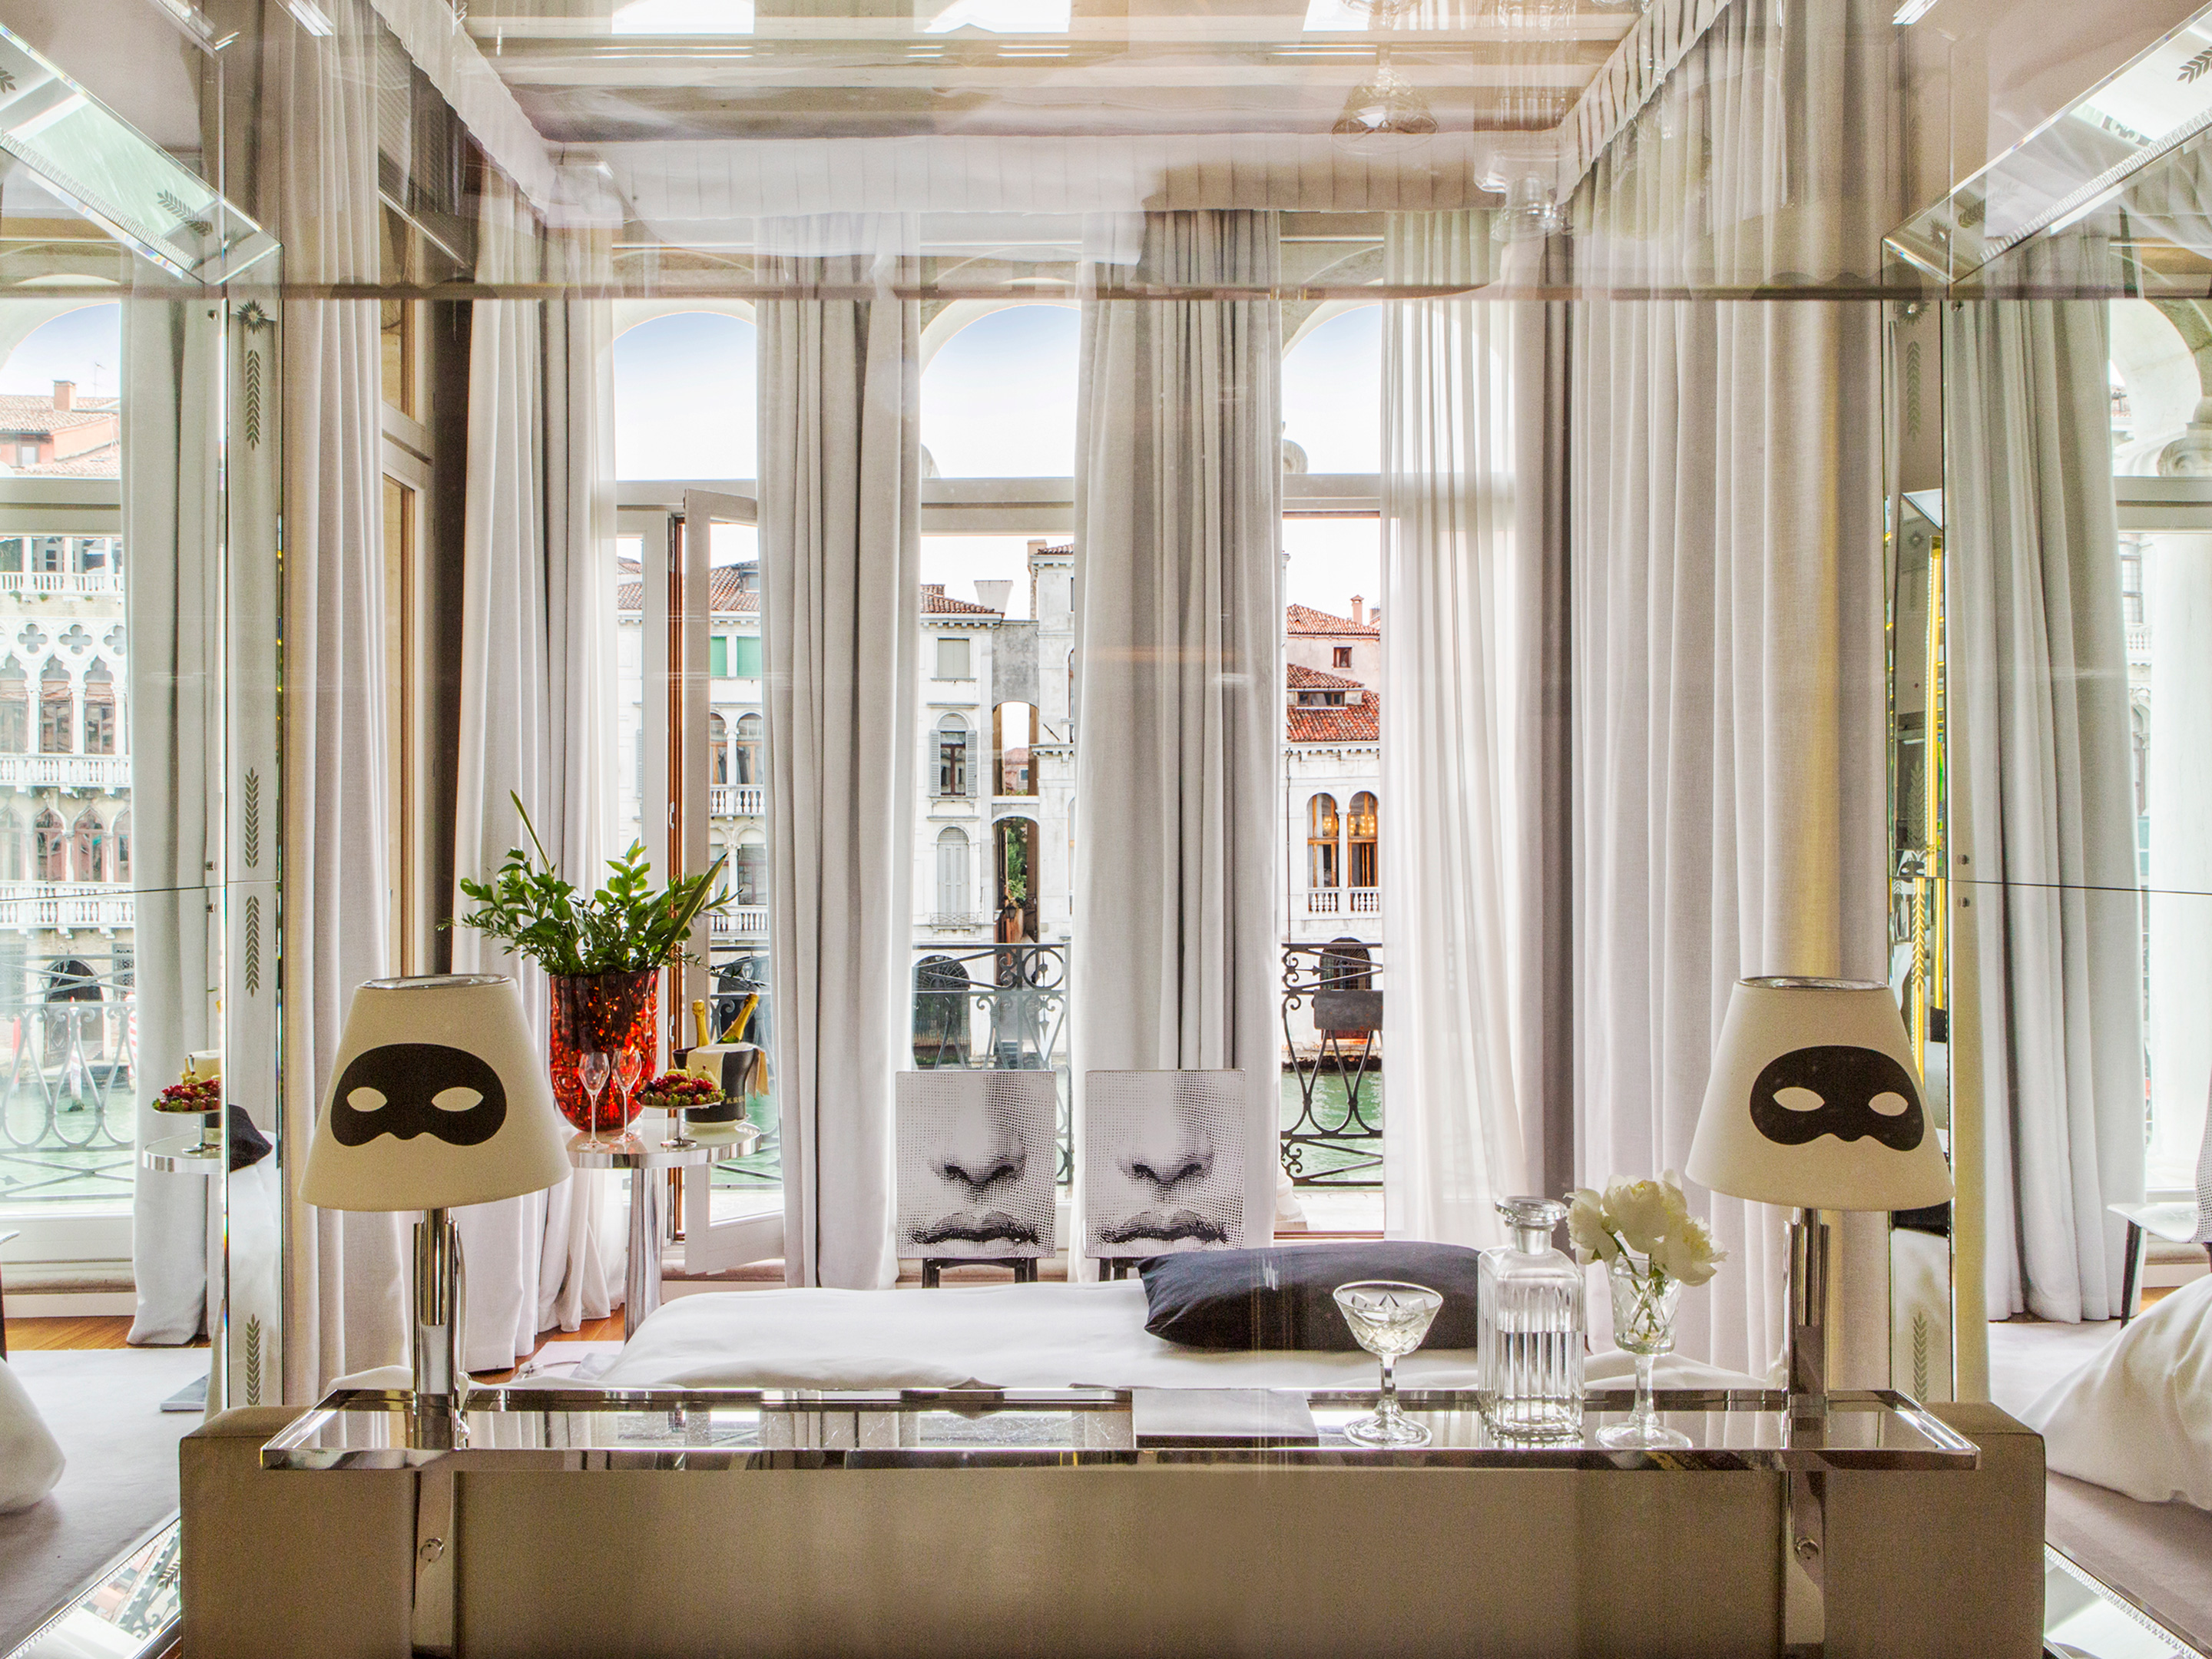 Rooms suites at palazzina grassi in venice italy for Hotel design venice